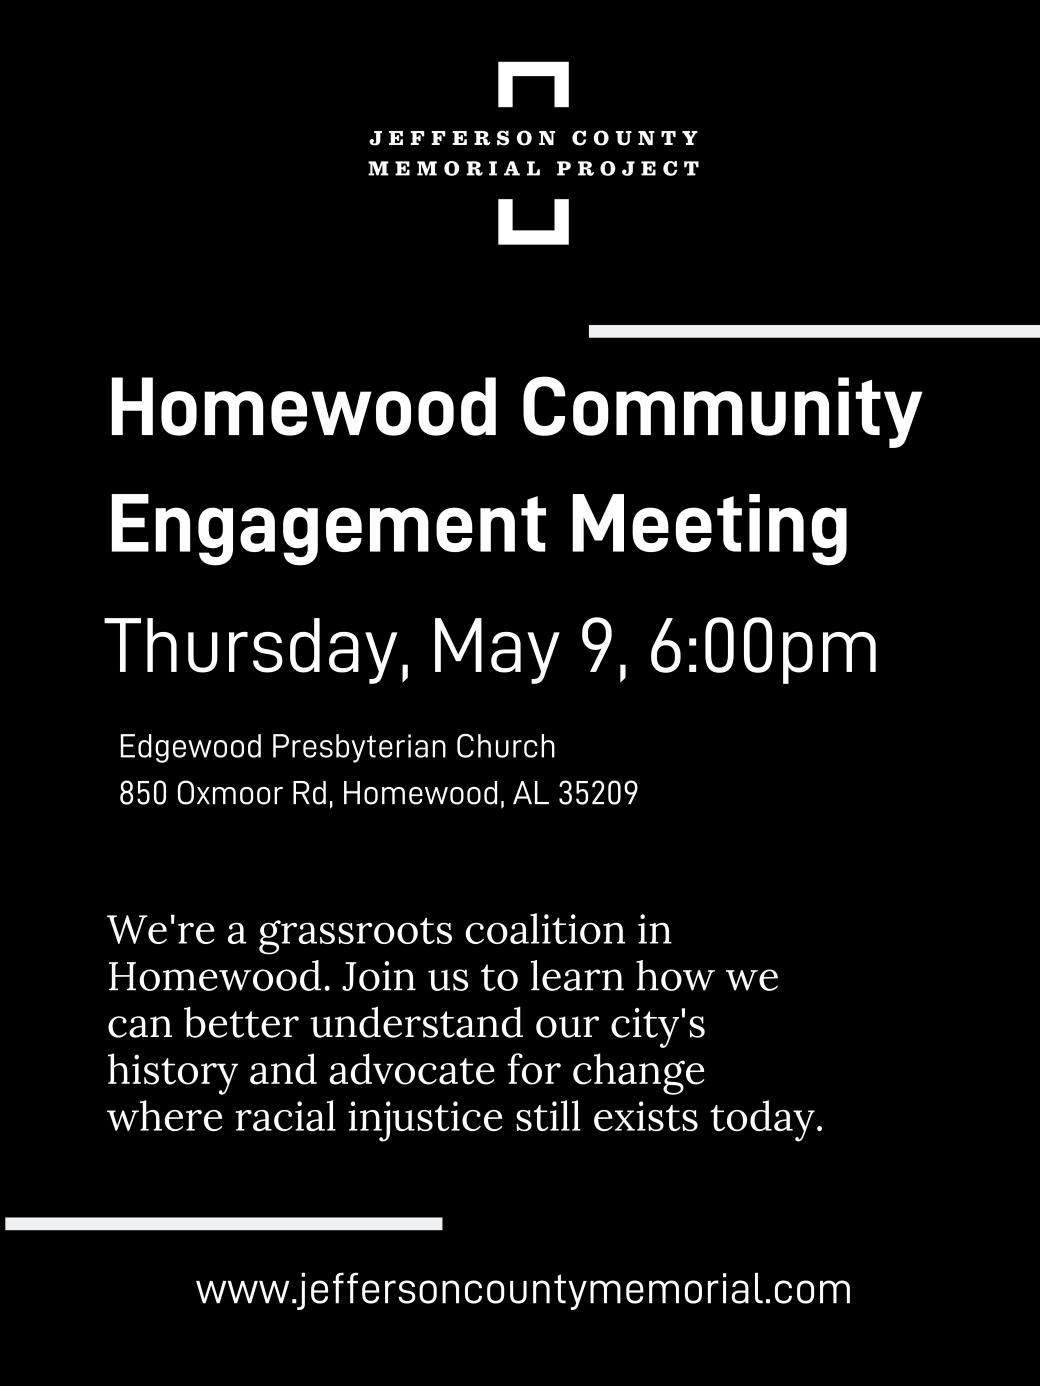 JCMP Homewood Meeting